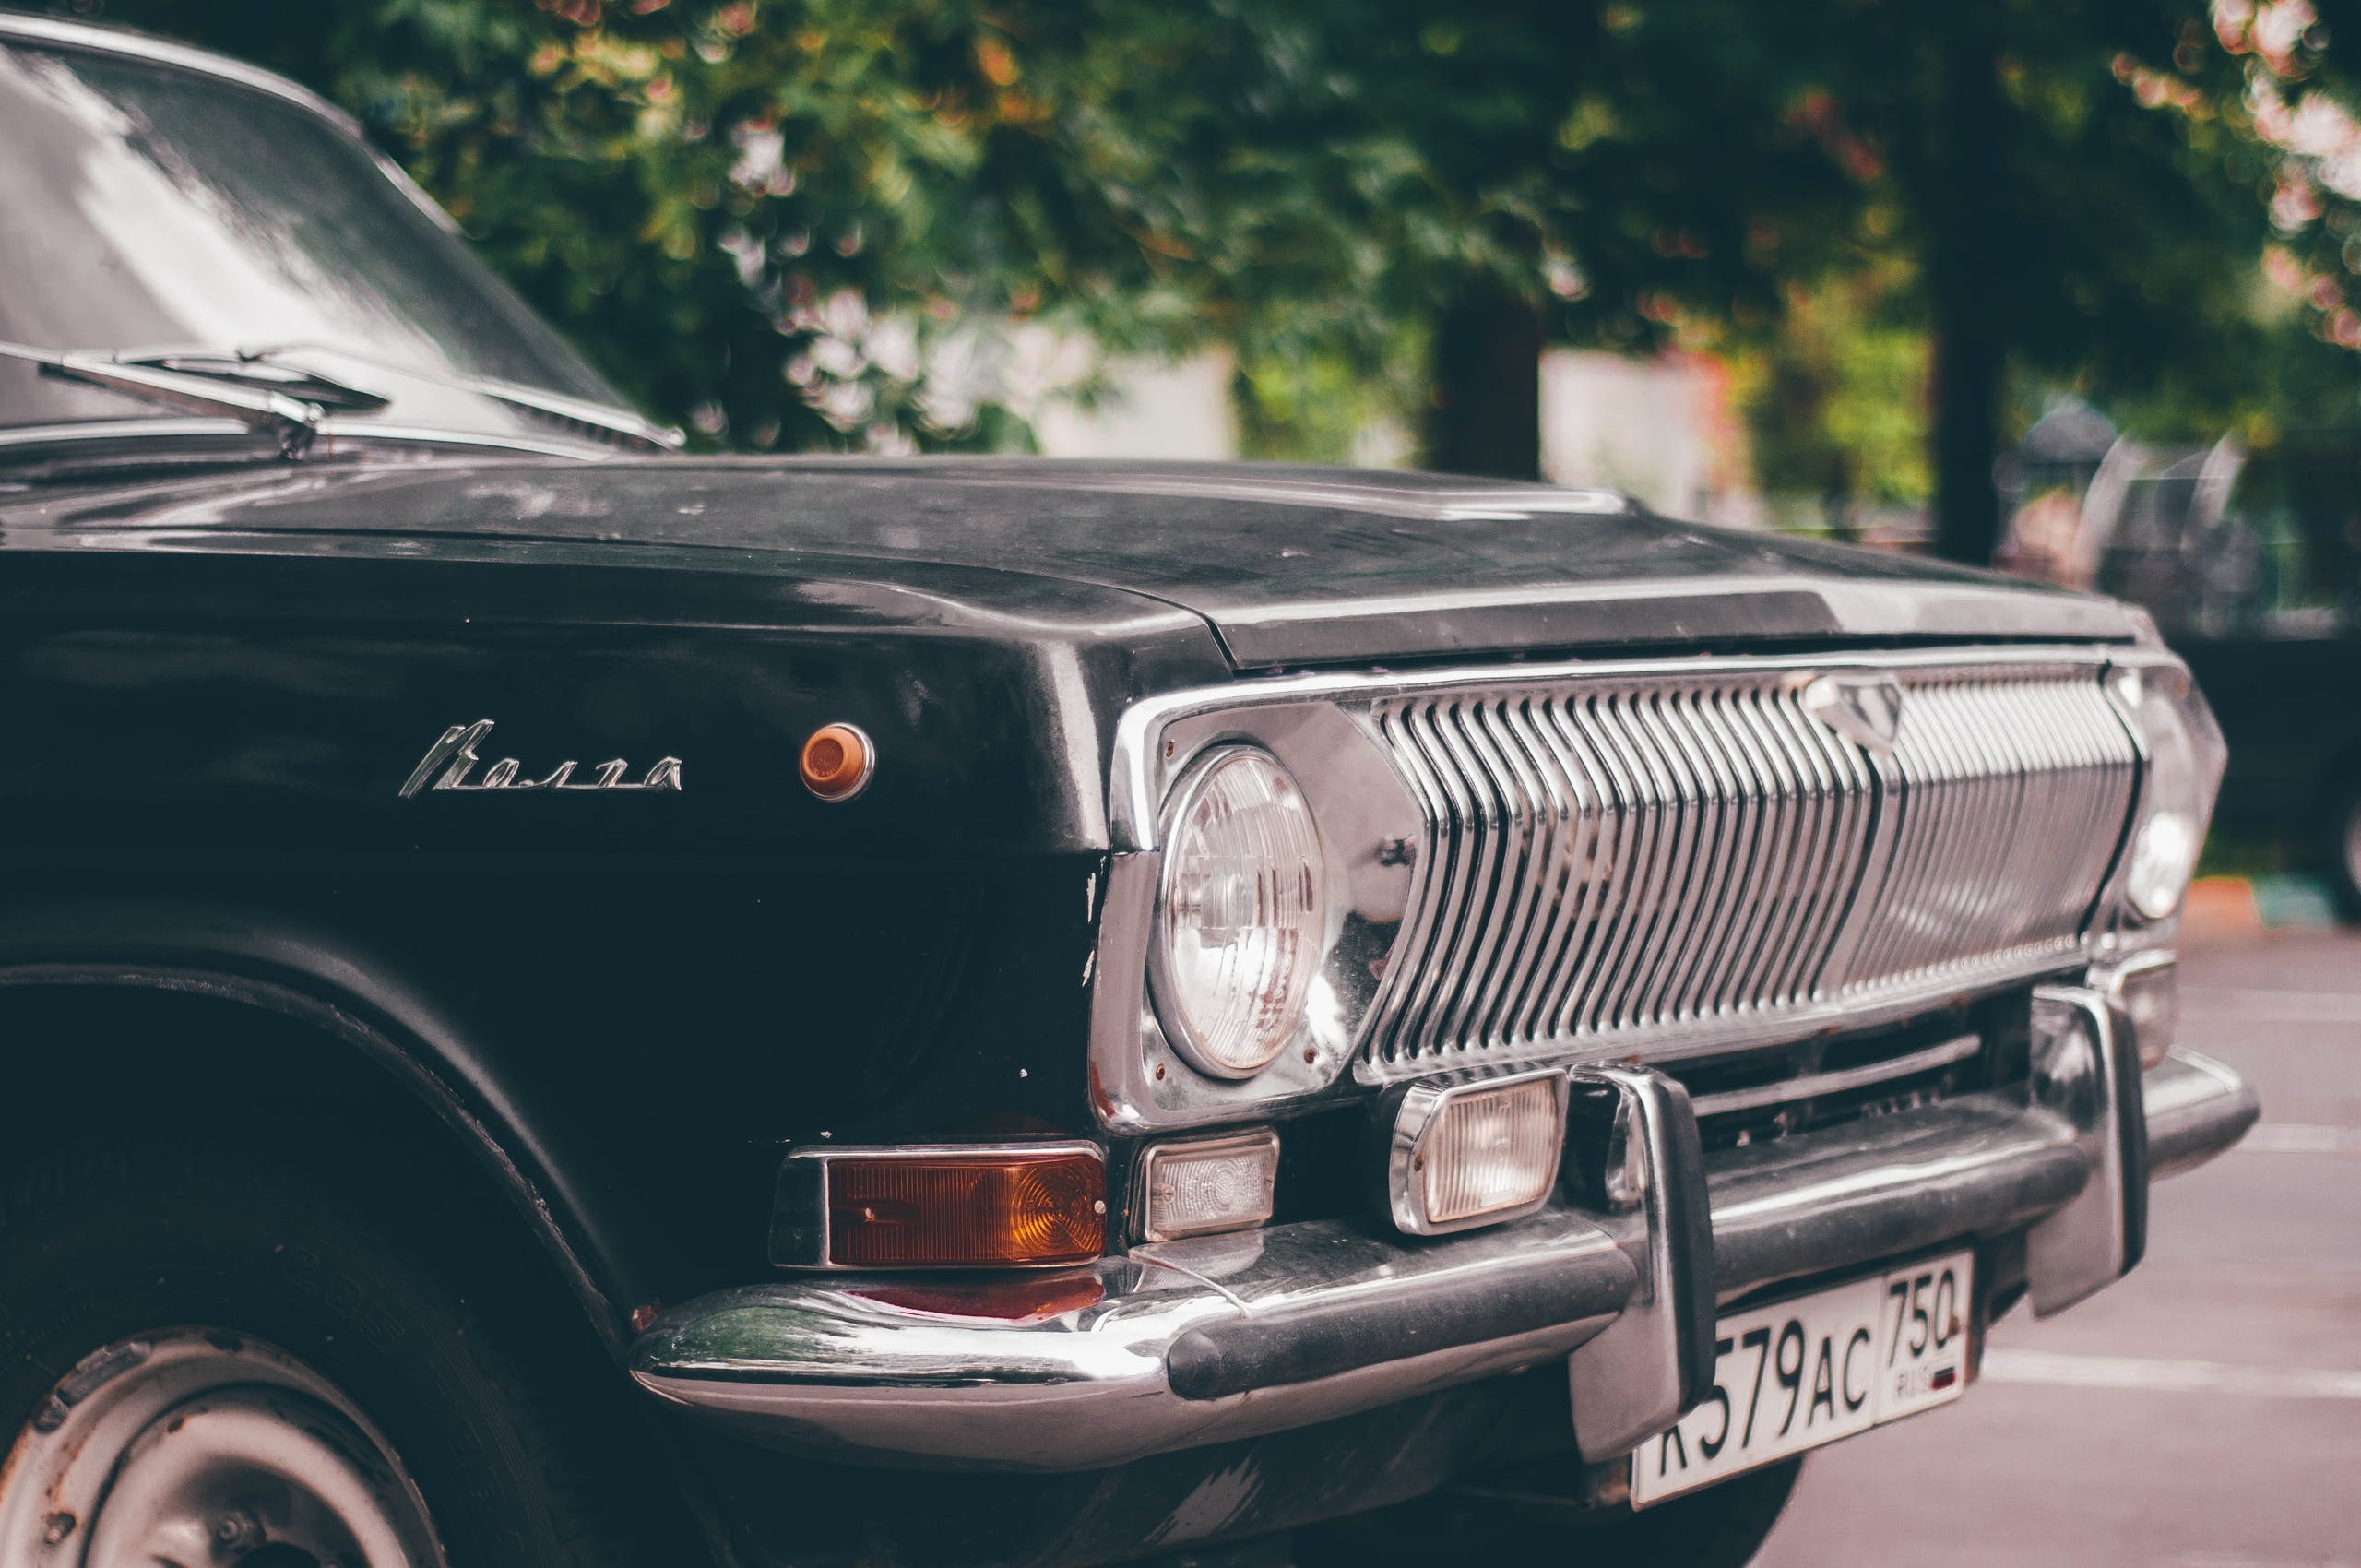 Free stock photo of car, vehicle, classic, hood